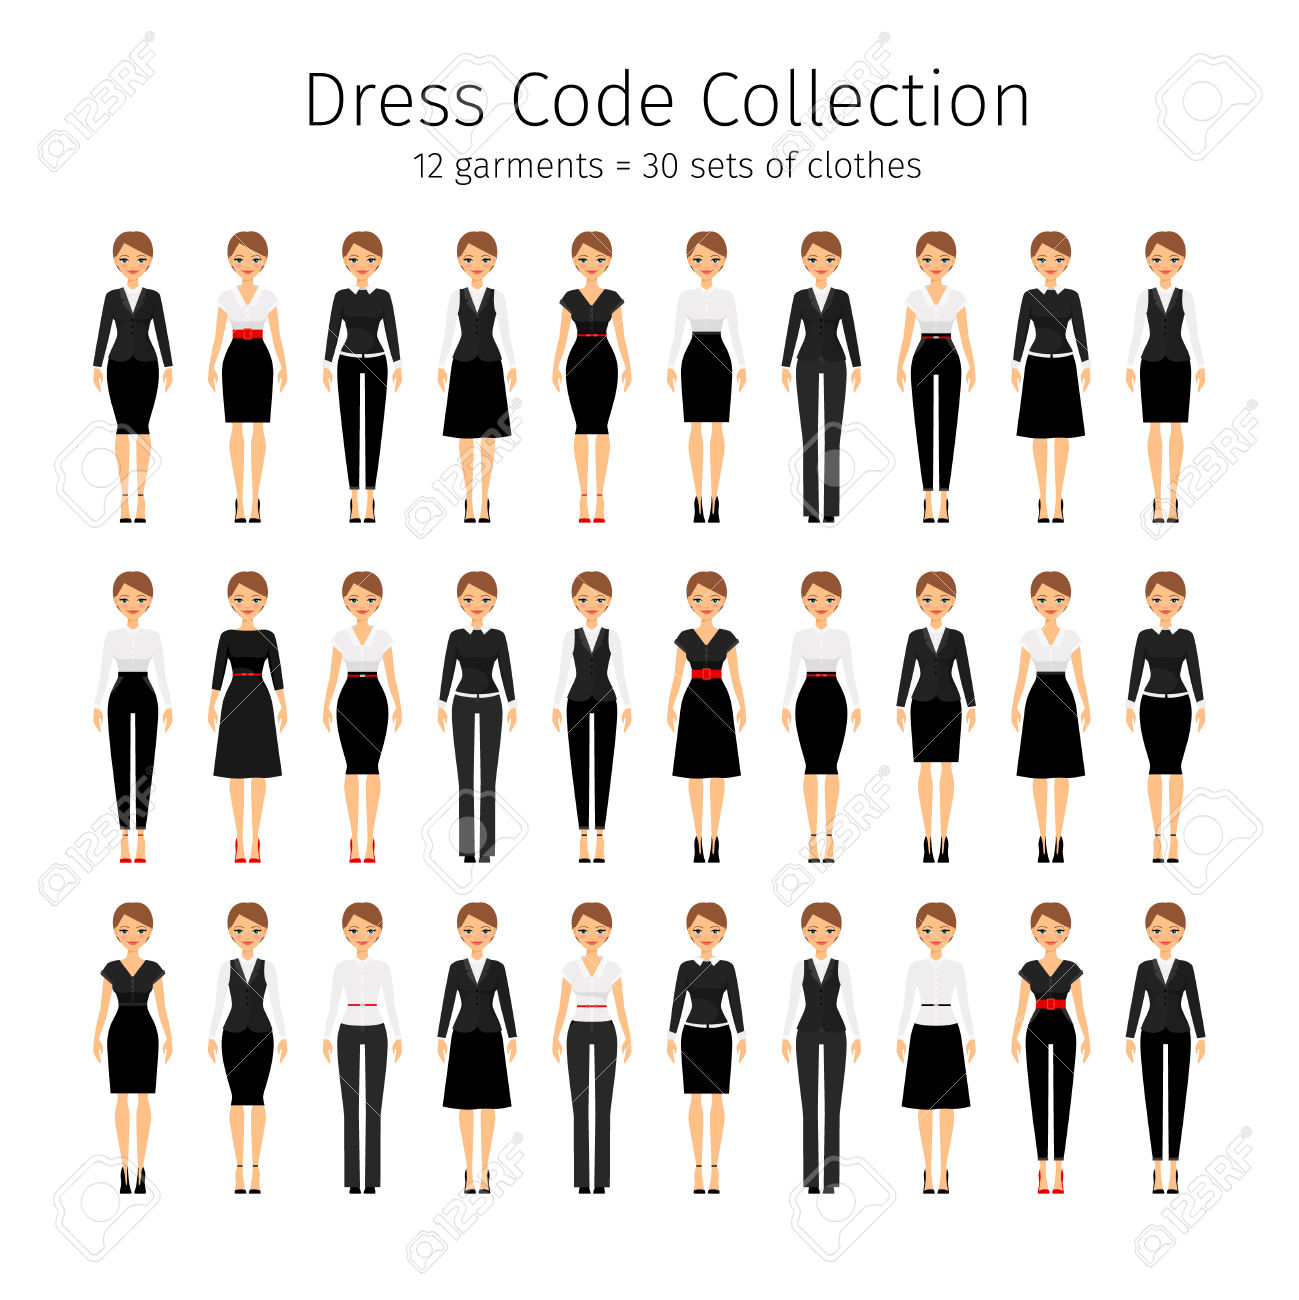 Business Woman Collection. Women Dress Code Vector Set Royalty.